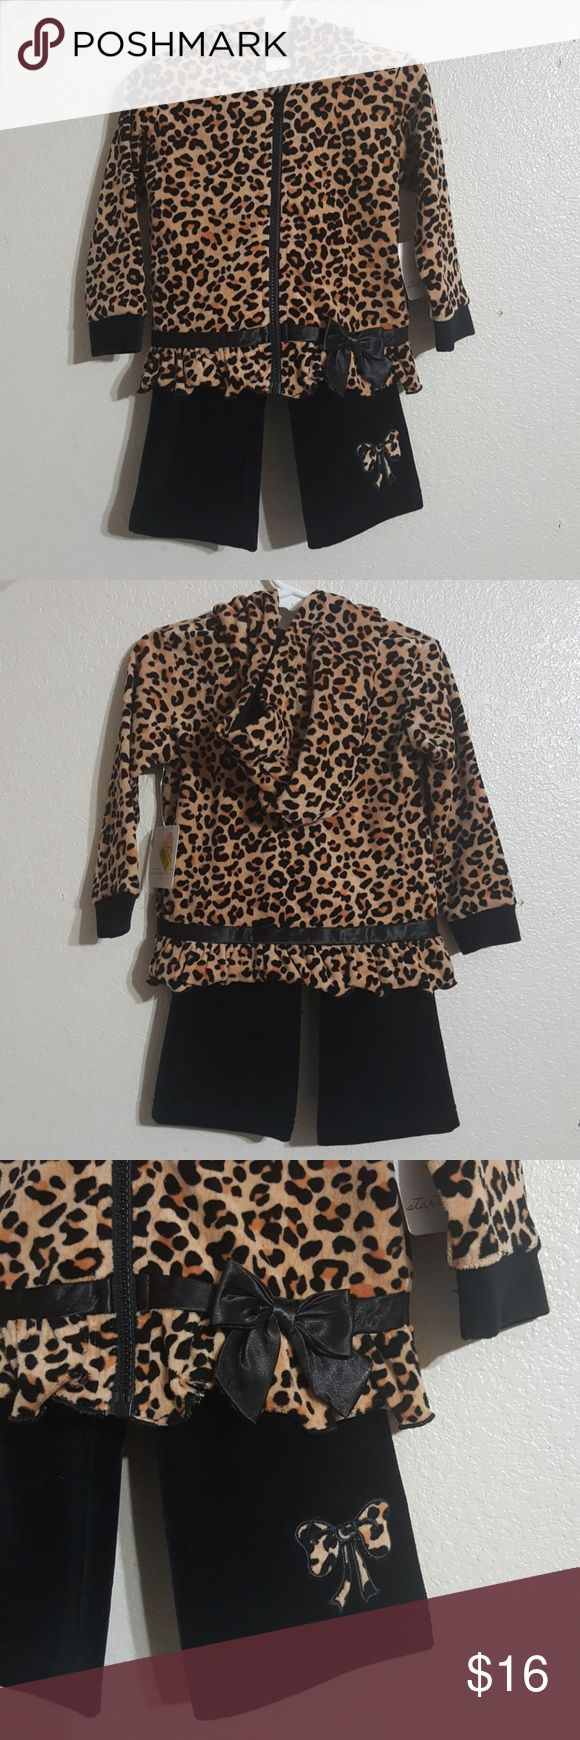 NEW STARTING OUT ANIMAL PRINT SET Adorable Starting Out outfit with a cute animal print.  Zip up hoodie and black pants with bow detail in velvet fabric.  Size 24months NWT. Starting Out Matching Sets